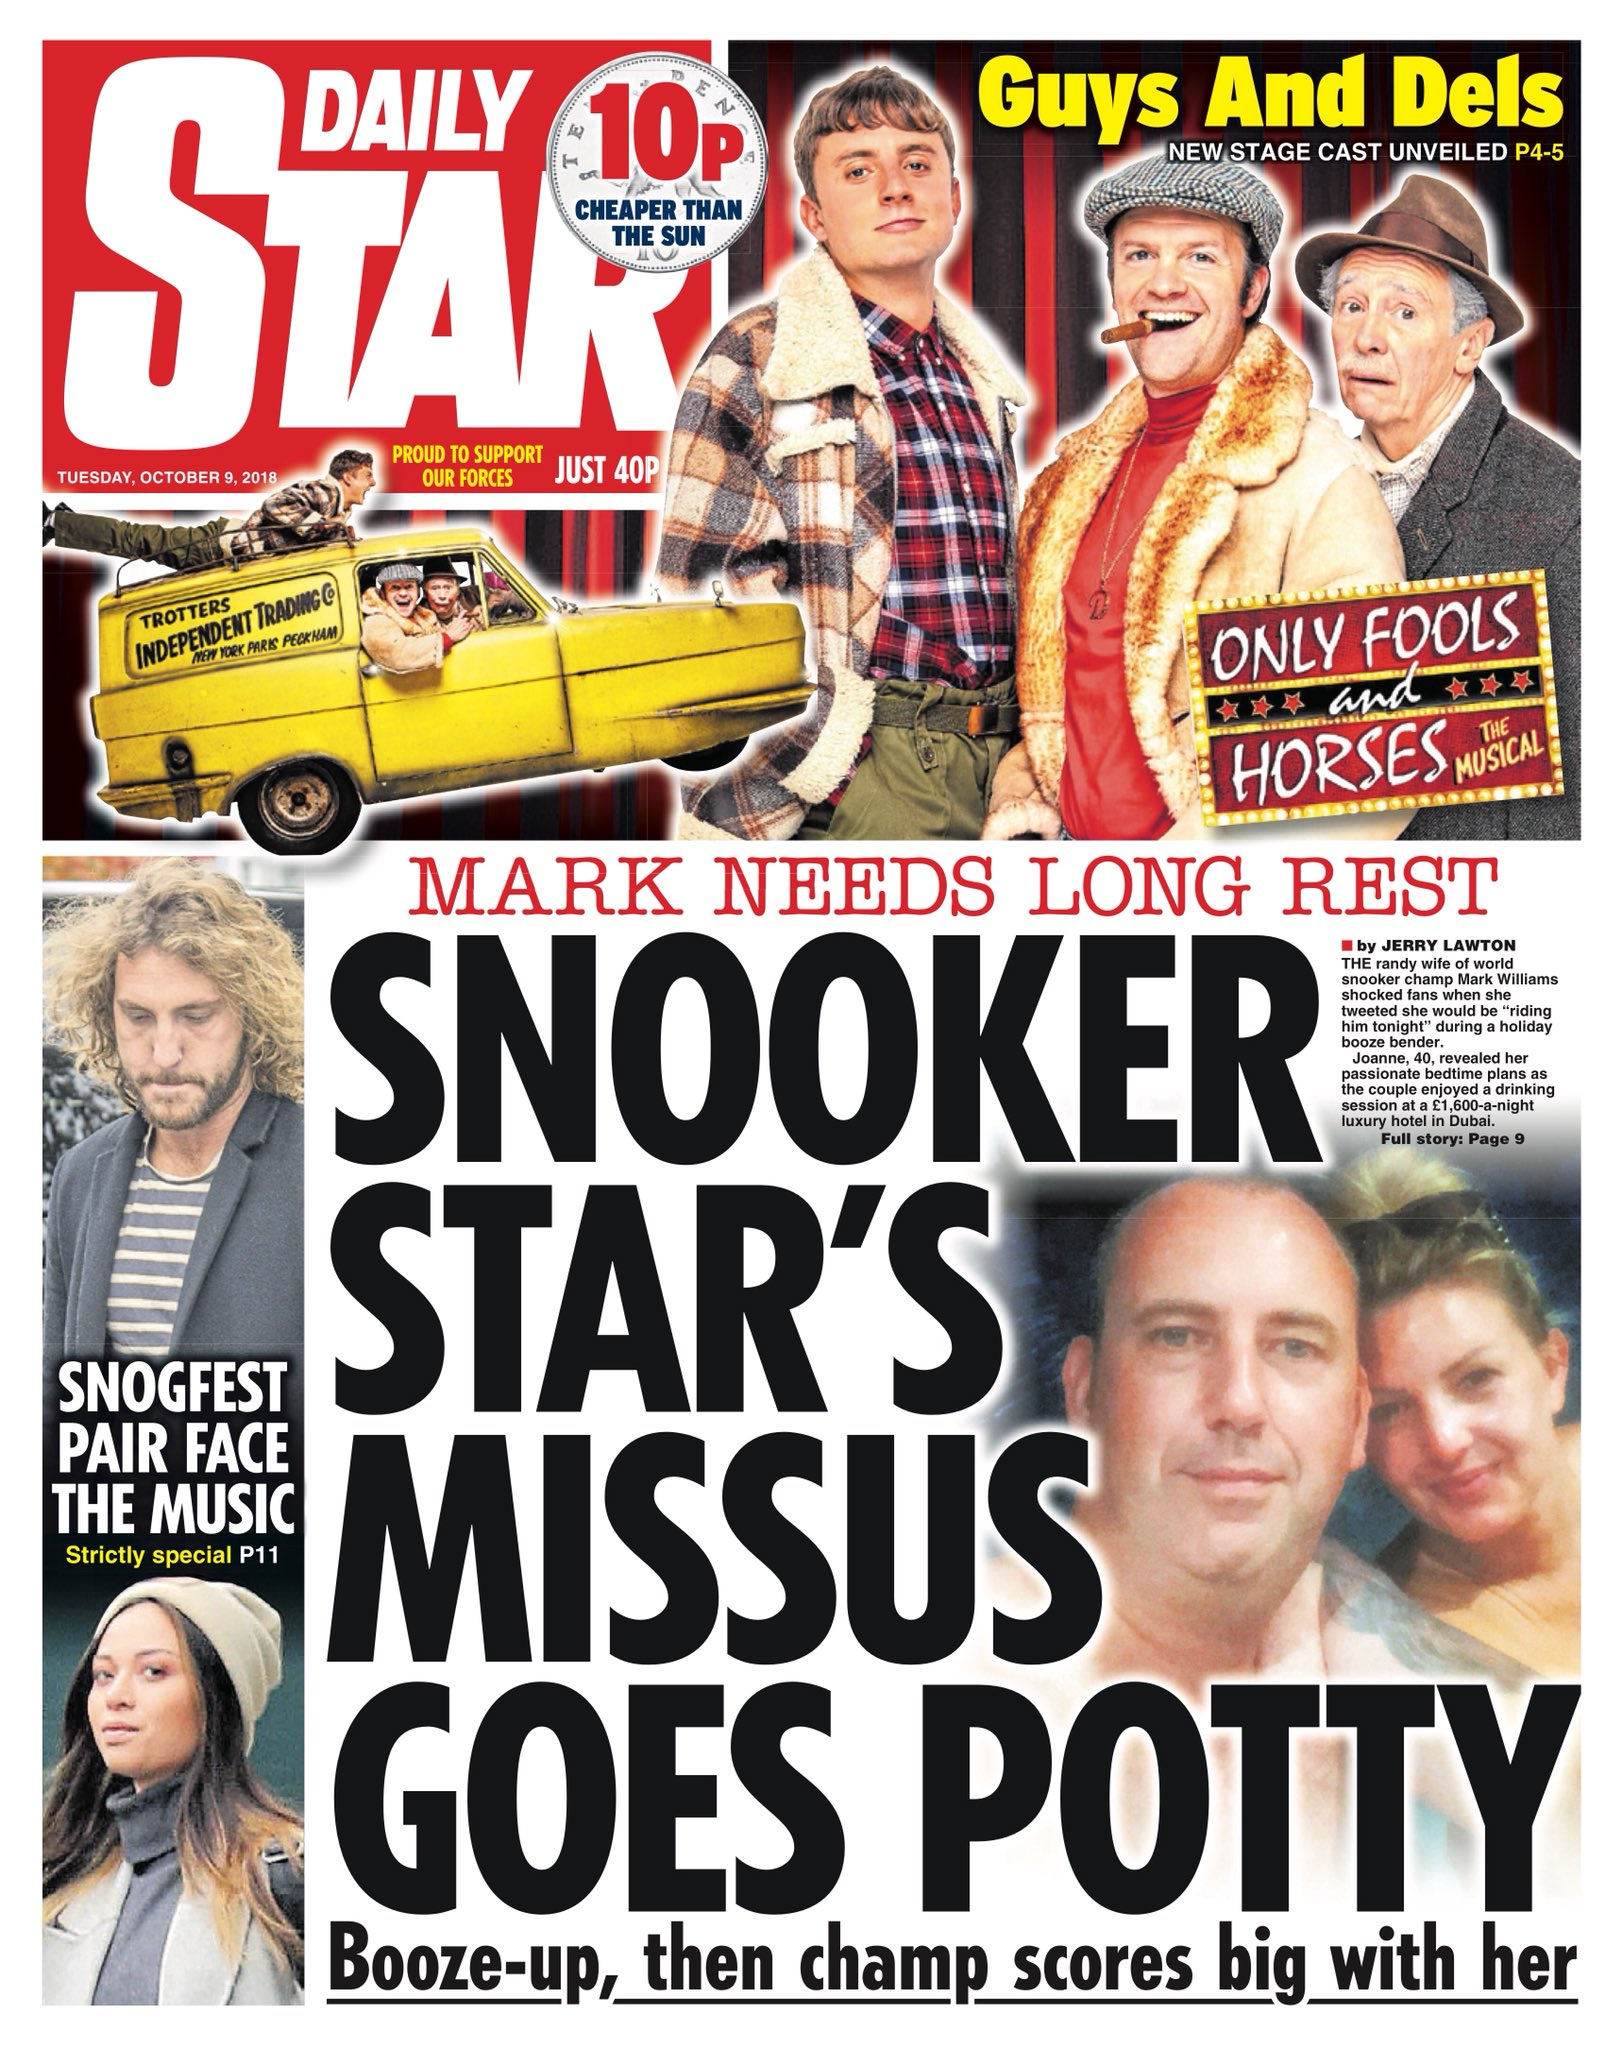 STAR: Snooker Star's missus goes potty #tomorrowspaperstoday https://t.co/GUbEYI3NIM